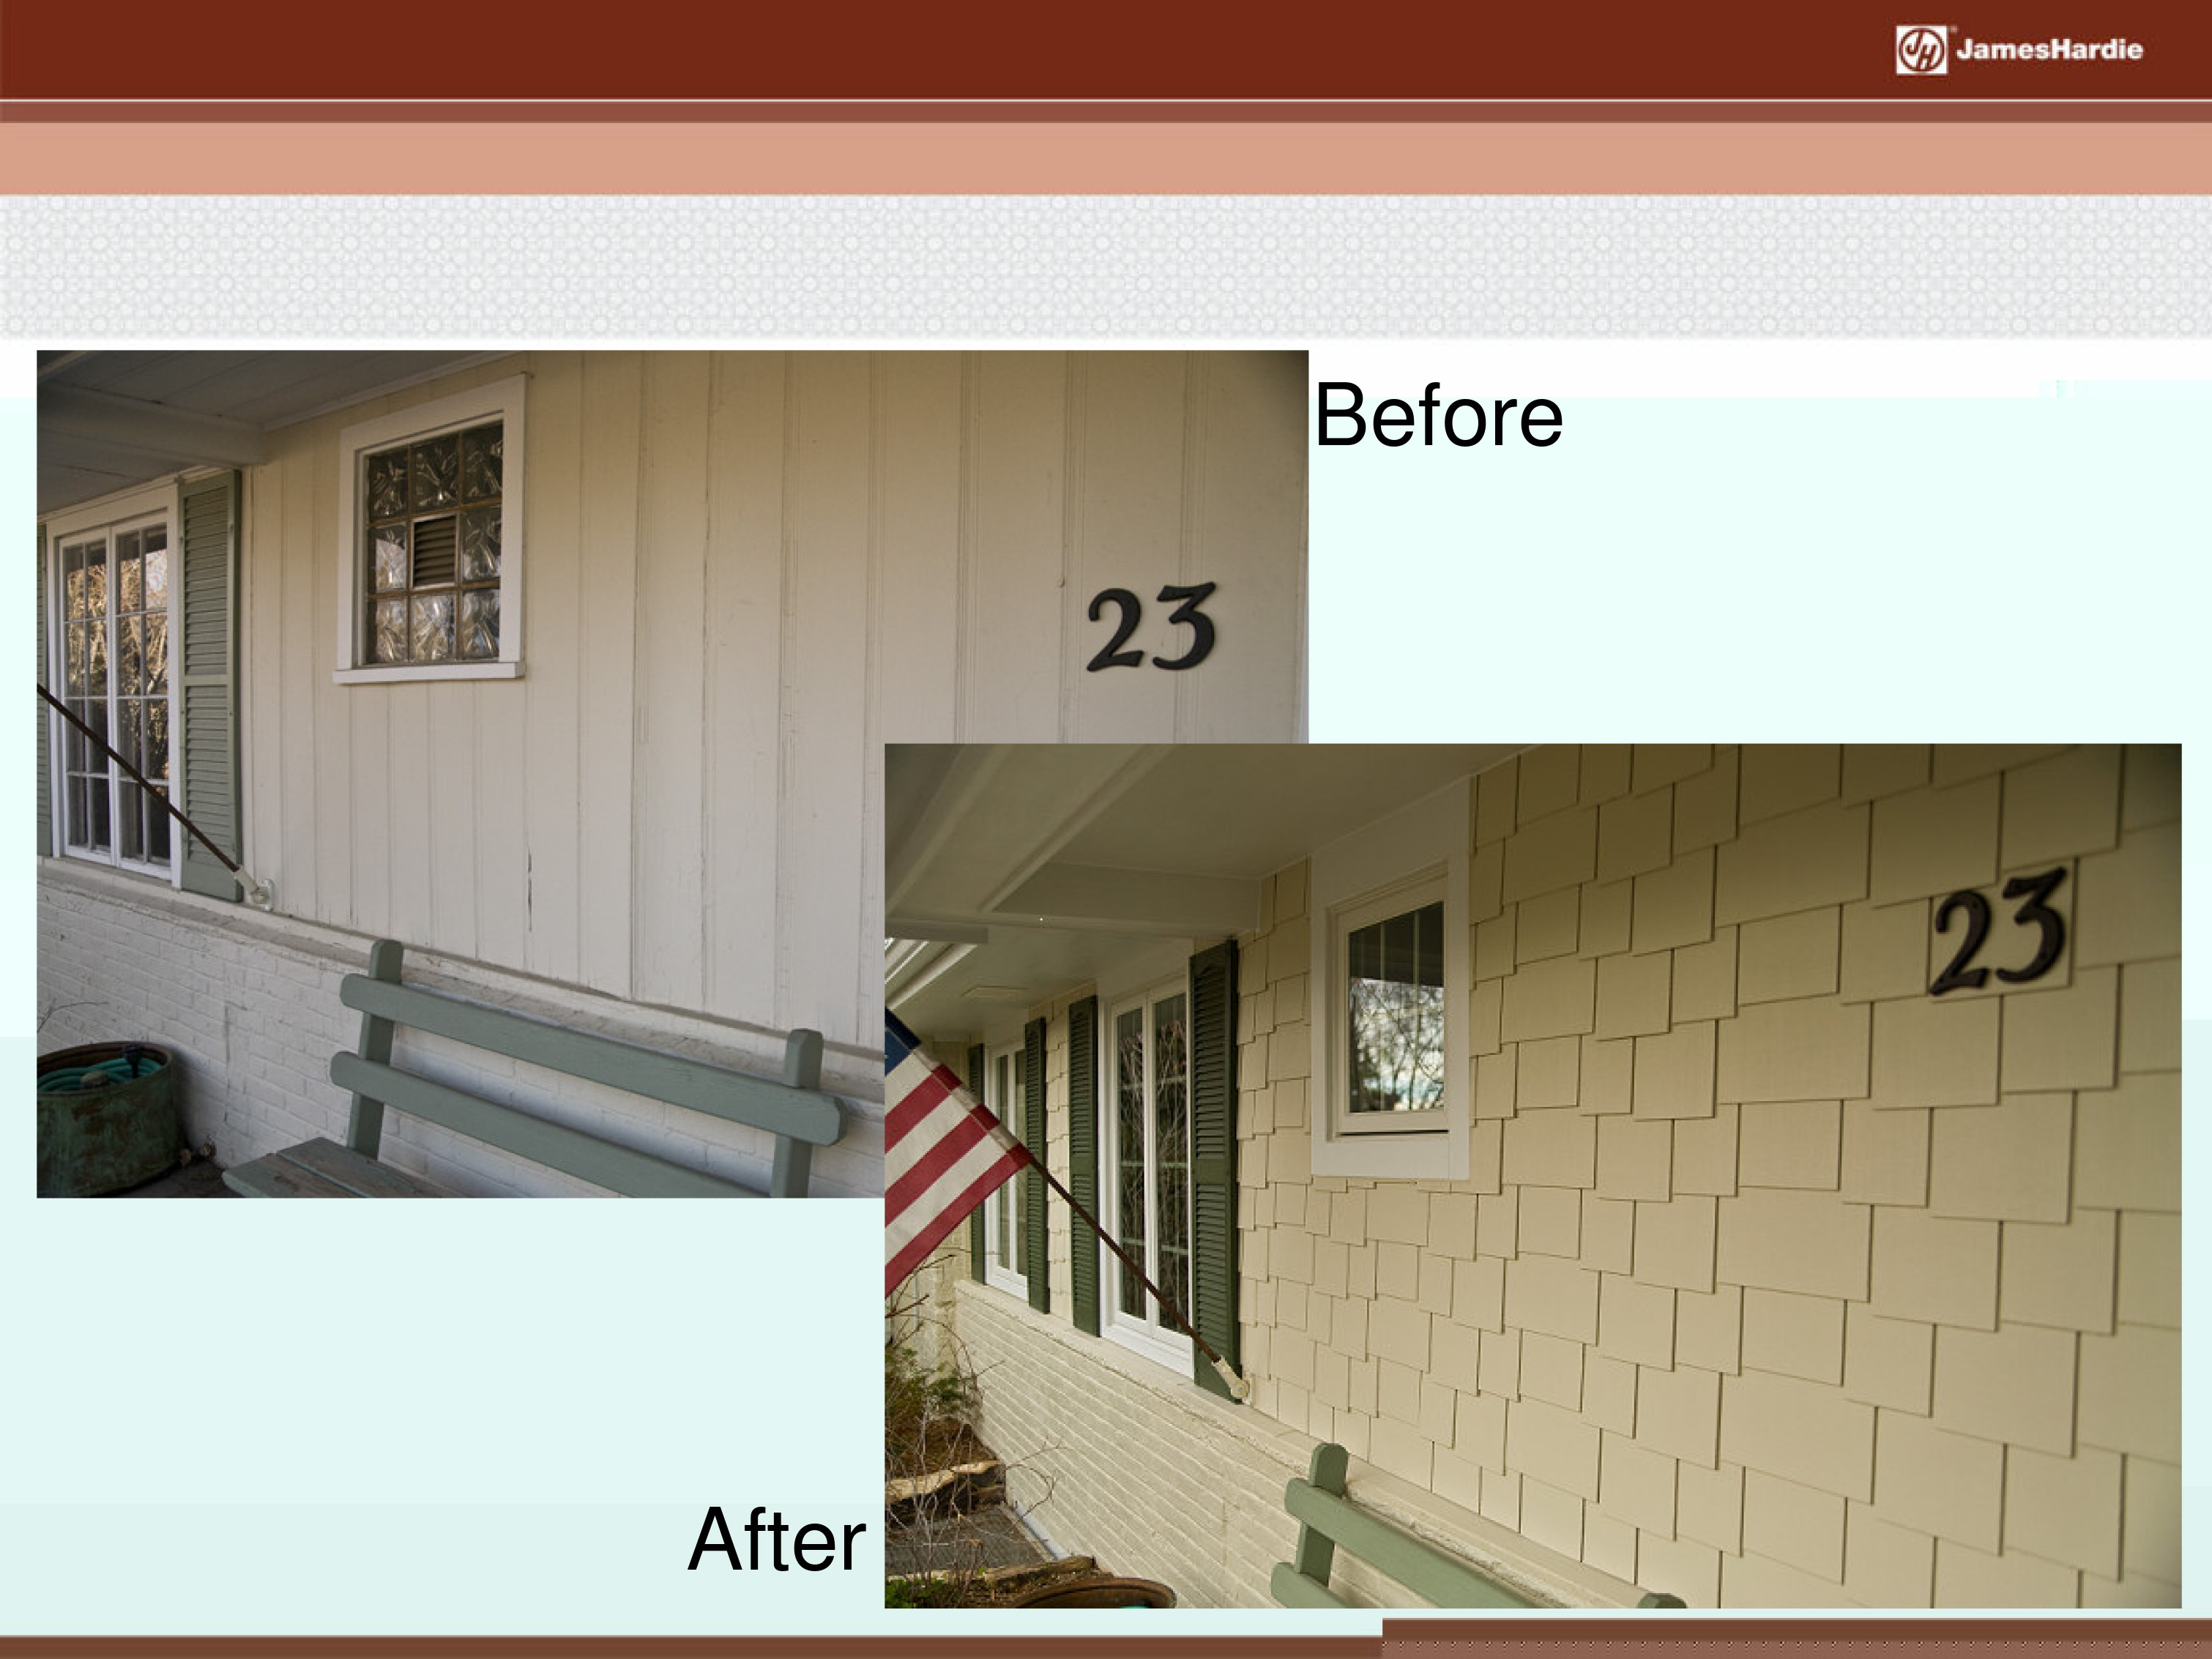 Before and After James Hardie Siding 31